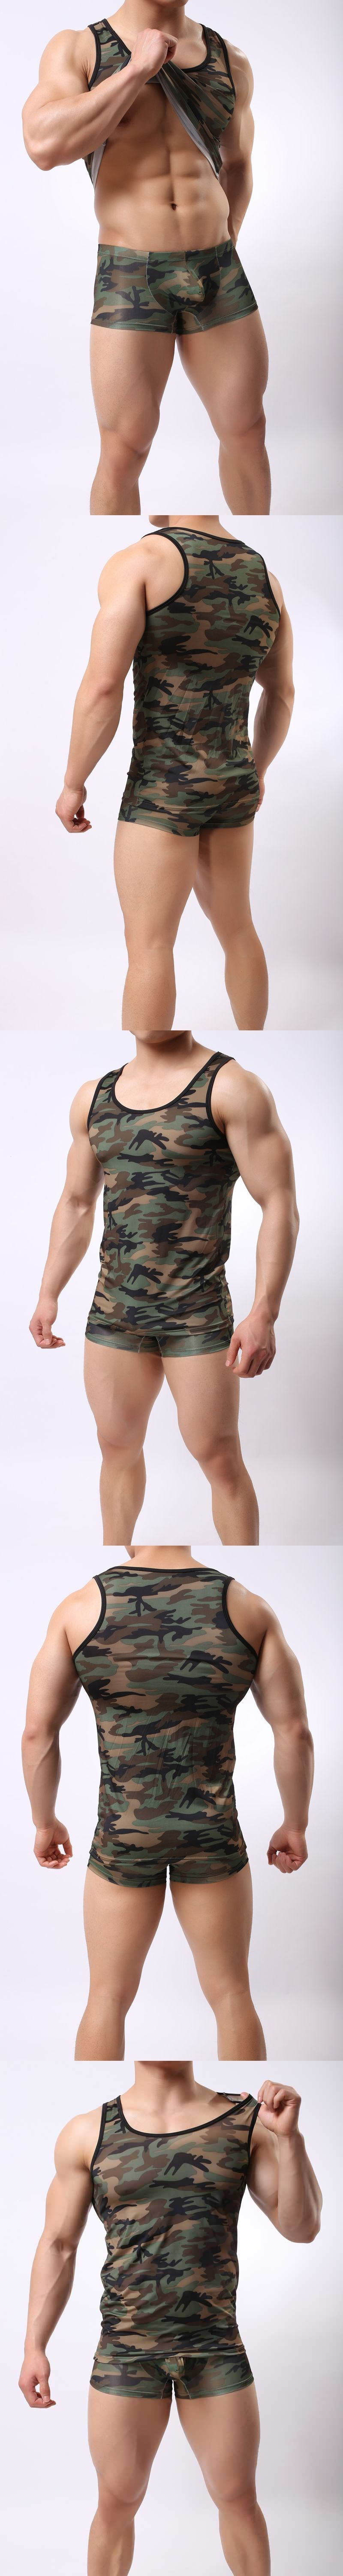 a033138de5b08 2017 New Camouflage Print Tank Top Mens Military Clothing Casual Mens Round  Neck Summer Sleeveless Elasticity